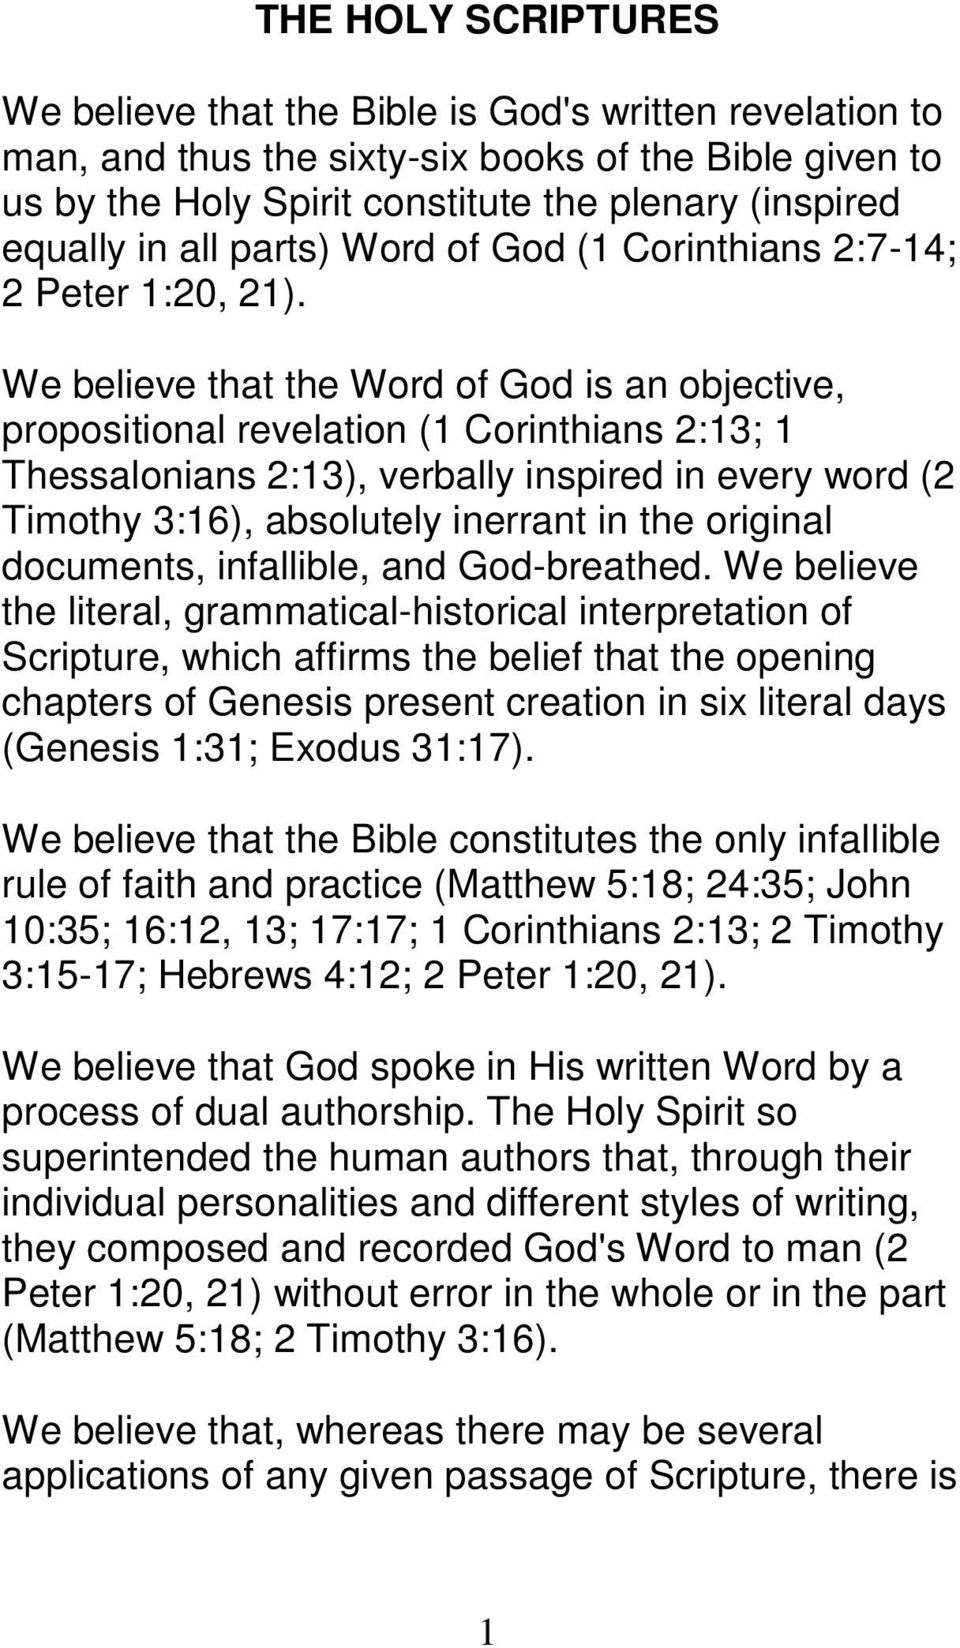 We believe that the Word of God is an objective, propositional revelation (1 Corinthians 2:13; 1 Thessalonians 2:13), verbally inspired in every word (2 Timothy 3:16), absolutely inerrant in the